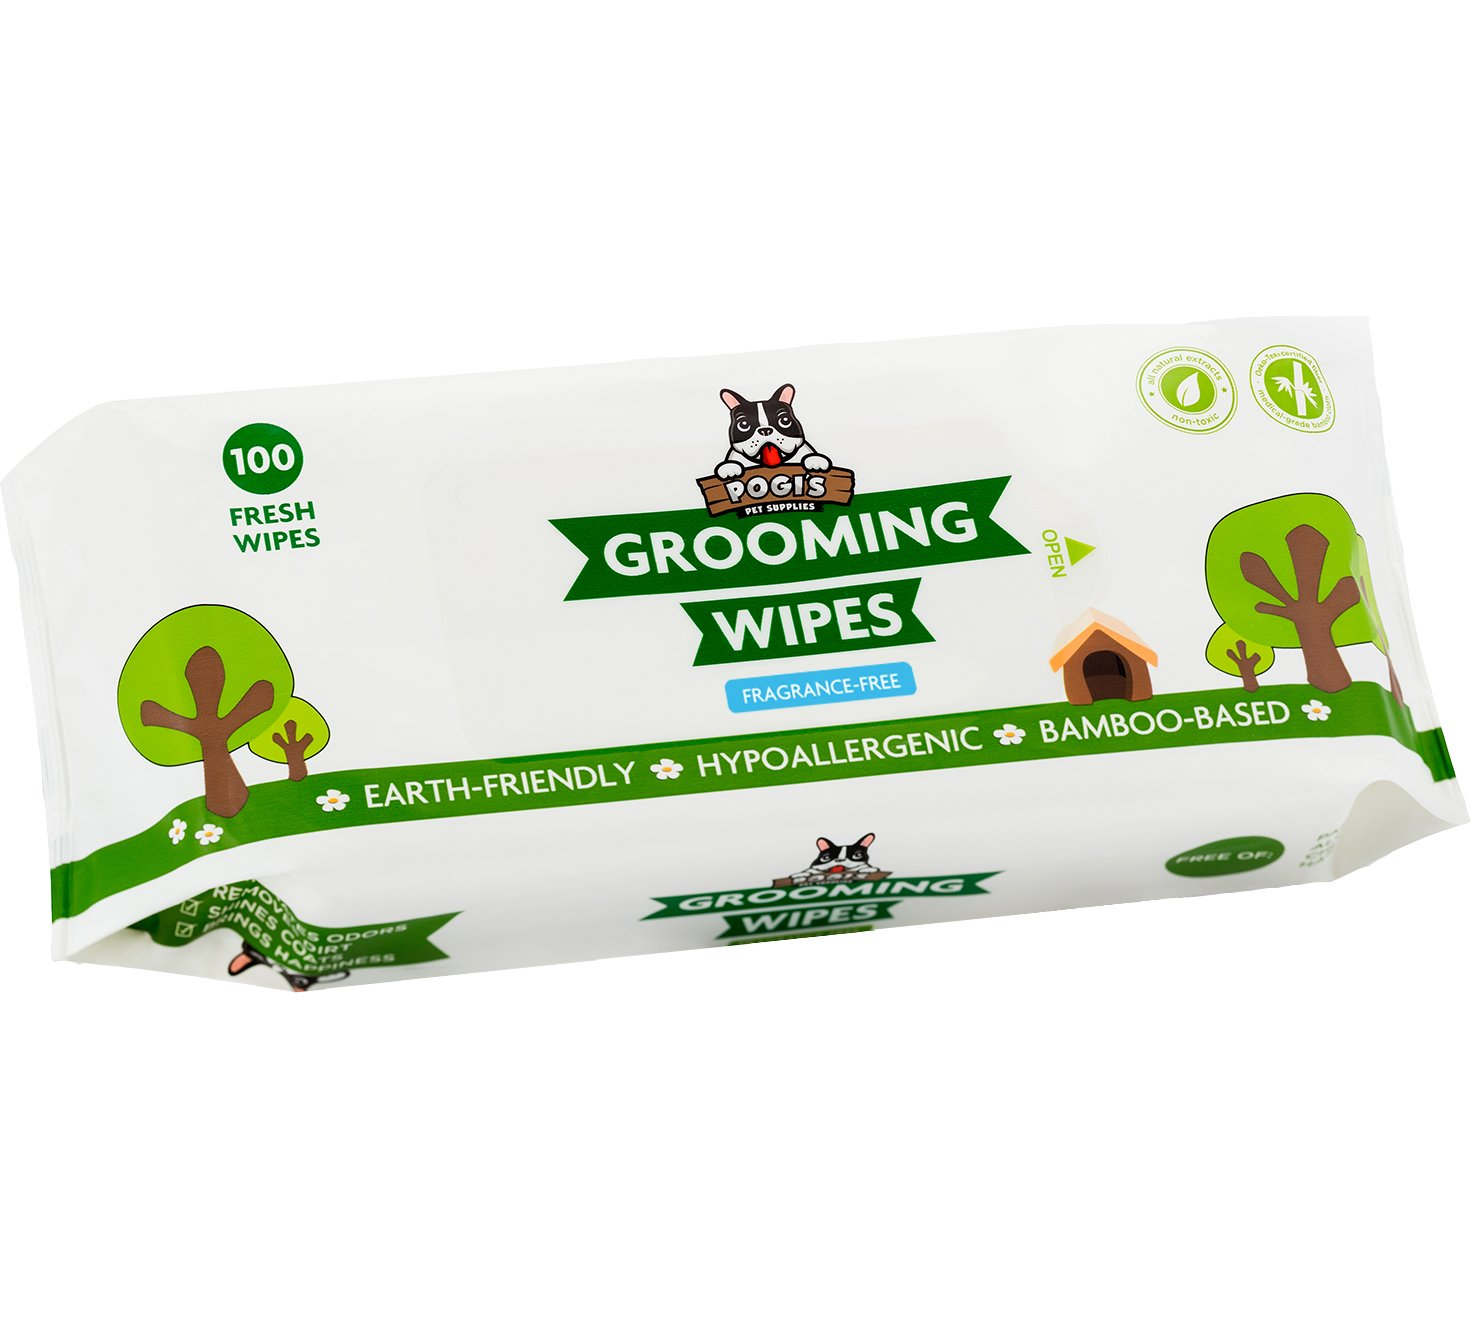 Pogi's Grooming Wipes - 100 Deodorizing Wipes for Dogs & Cats - Large, Hypoallergenic, Fragrance-Free